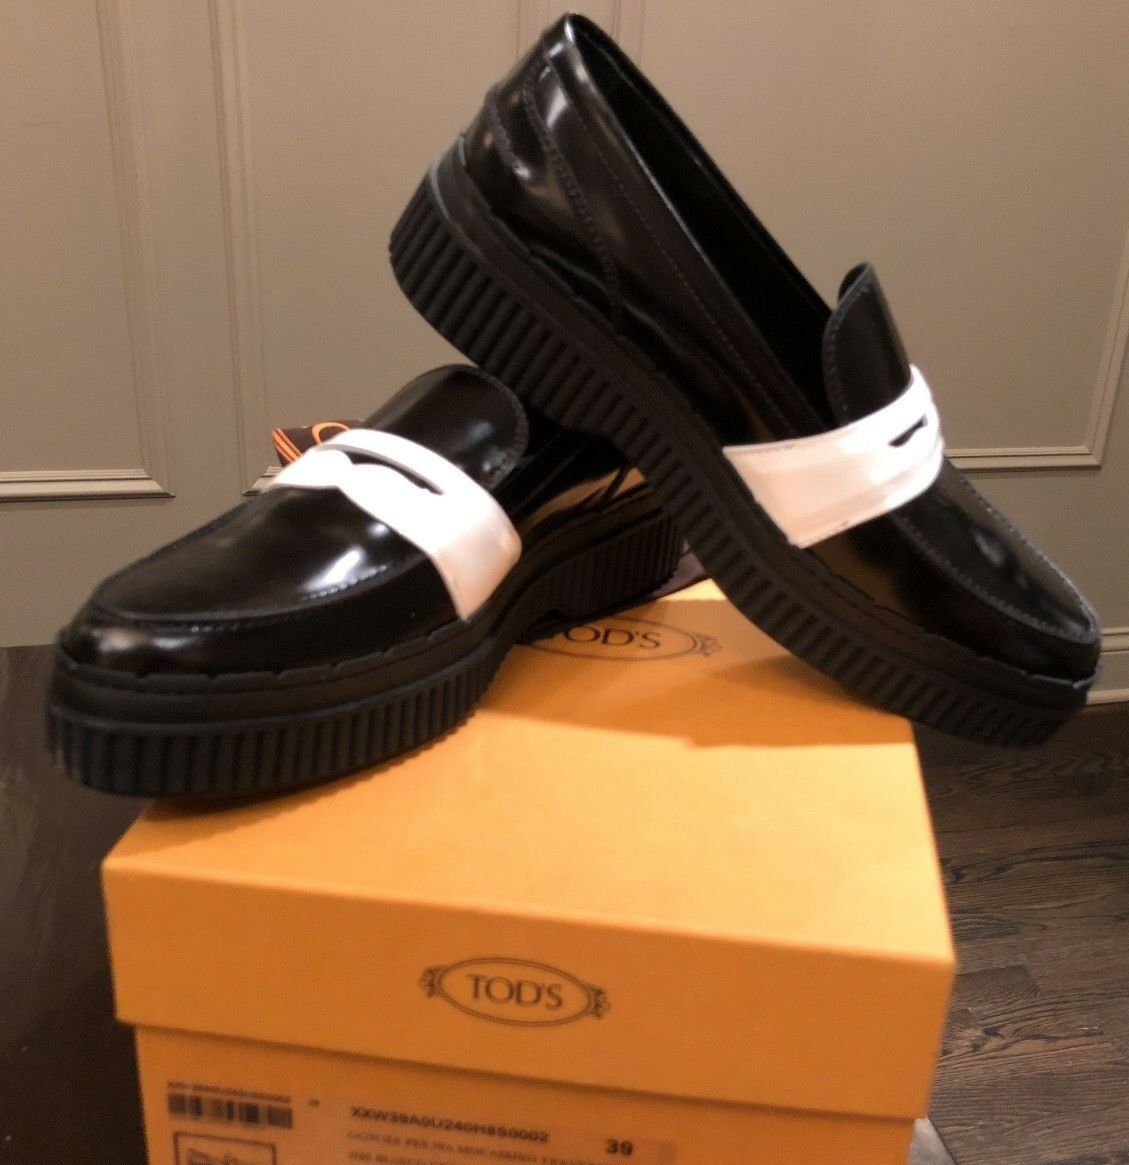 Celine Skate Perforated Scarpe da Leather Ginnastica Slip On Patent Leather da Nero 41/ 10.5 $950 NIB 70096d